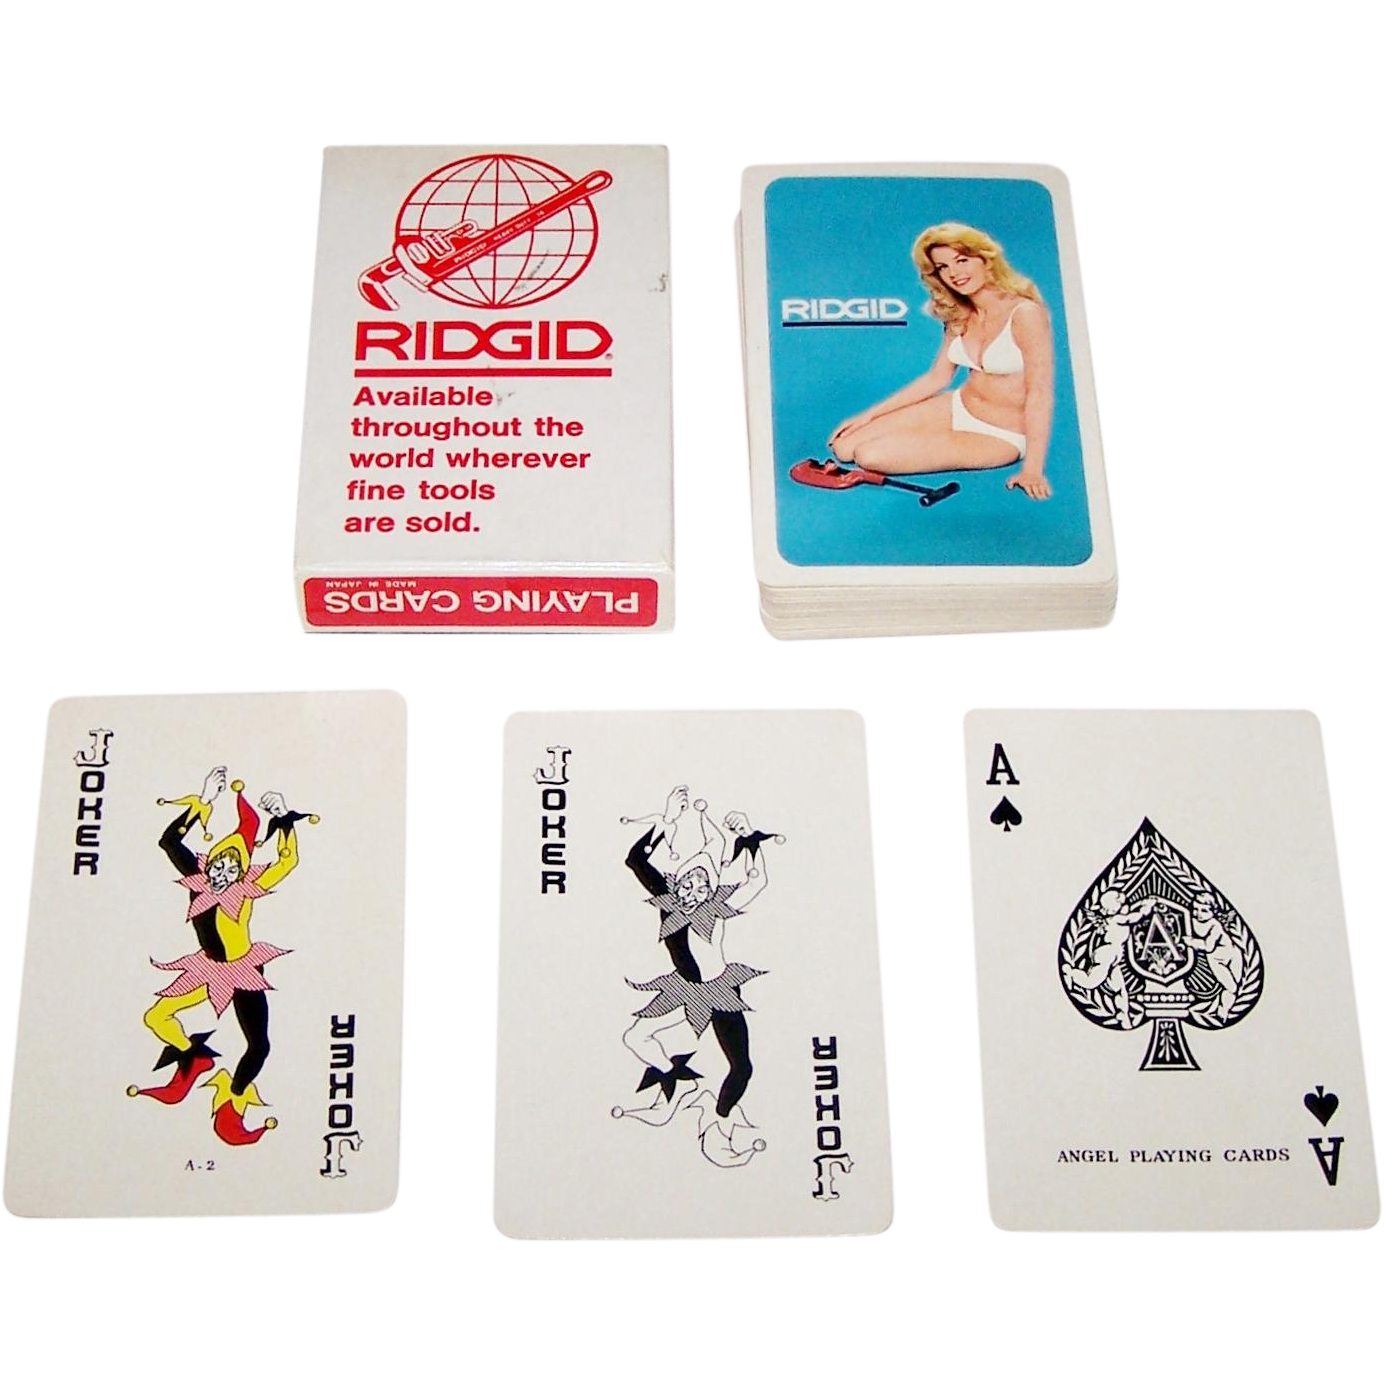 "Angel ""Ridgid"" Pin-Up Playing Cards, Ridge Tool Company, c.1975-1980"